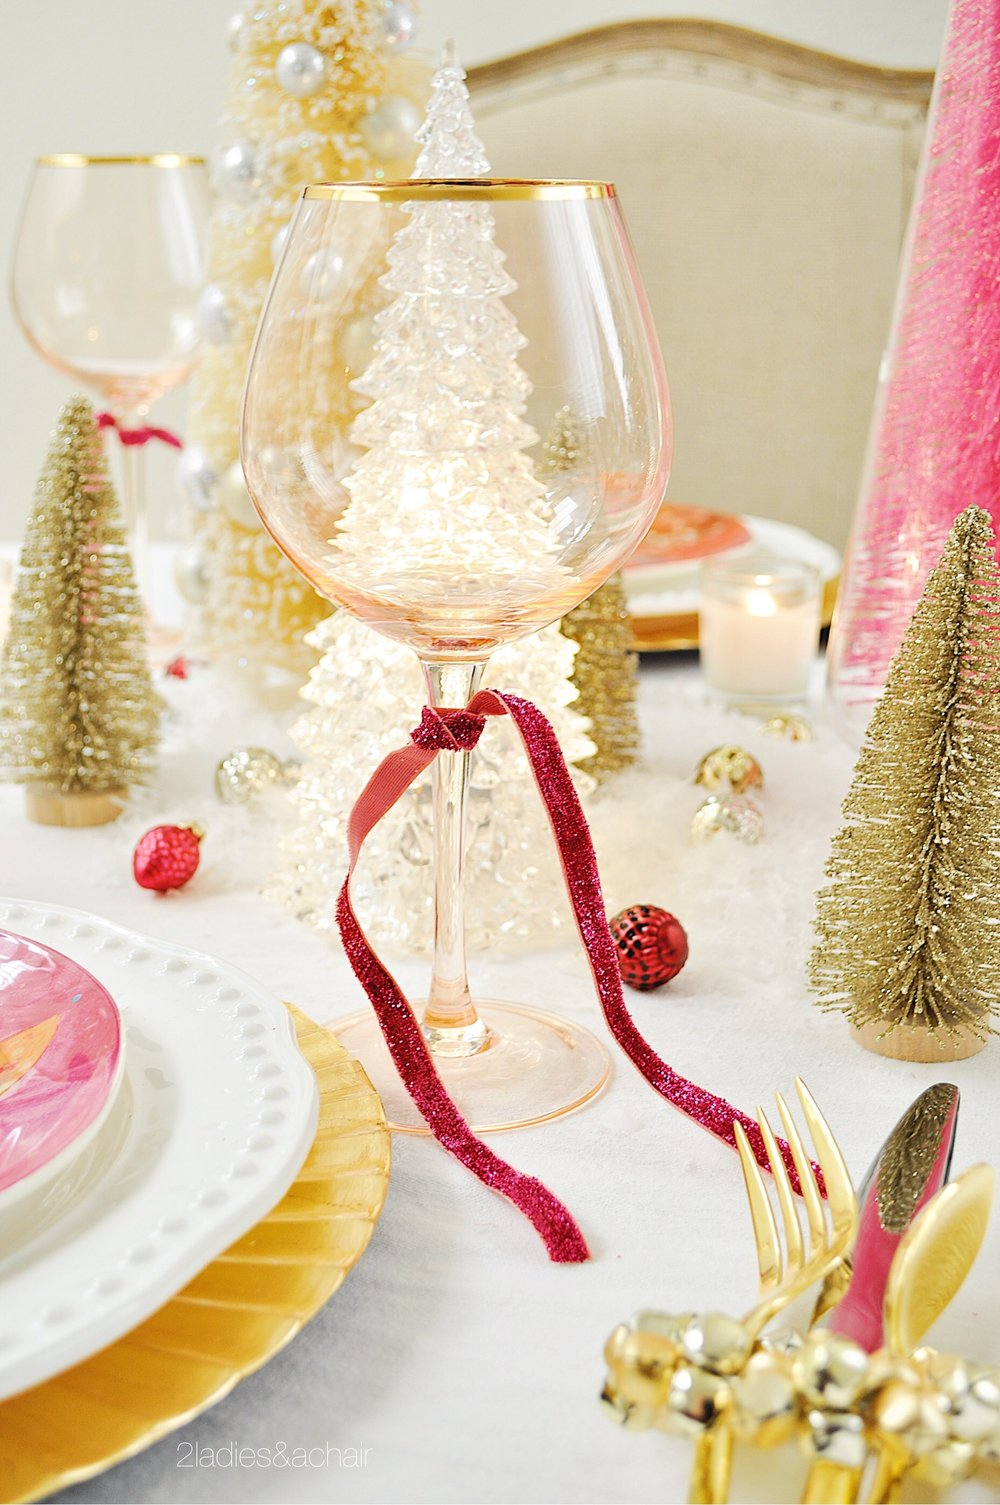 christmas tablescape ideas FullSizeRender(6).jpg